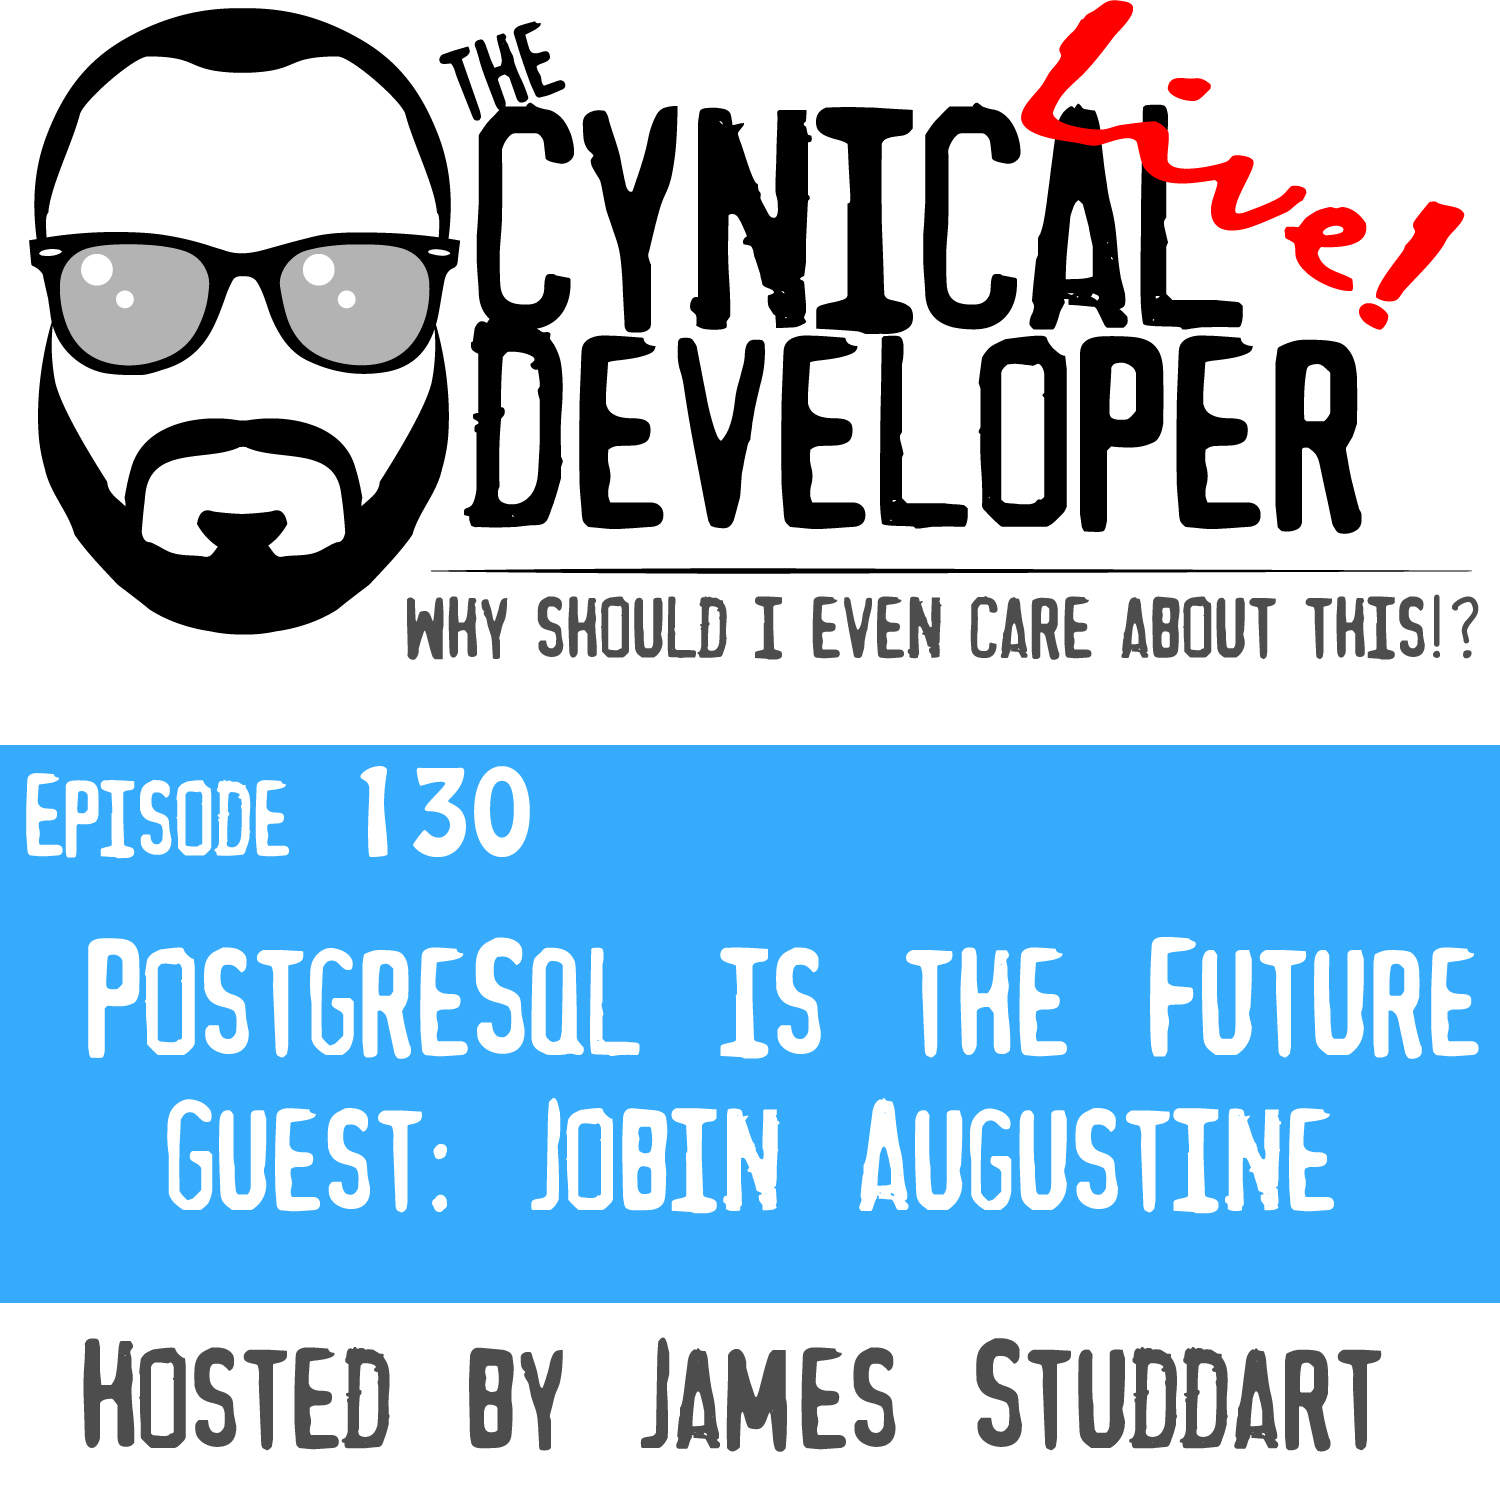 Episode 130 - Postgres is the Future! - Percona Live Europe 2019